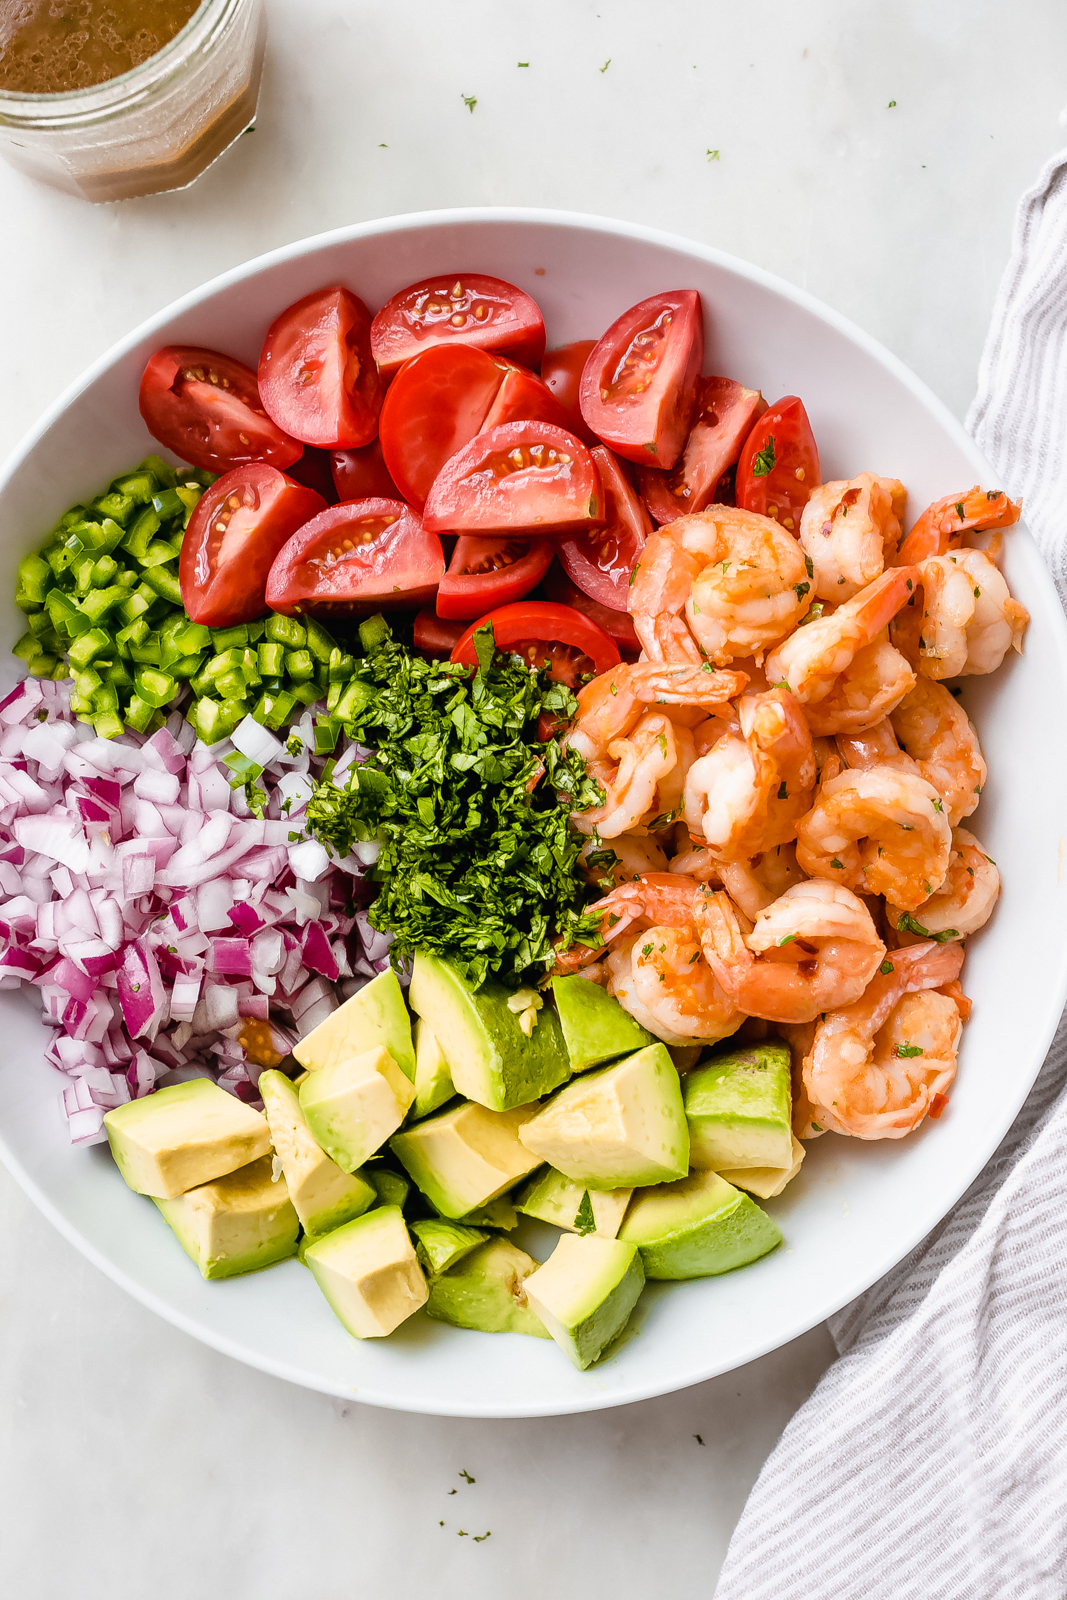 ingredients for Mexican shrimp salad in piles in a large white bowl